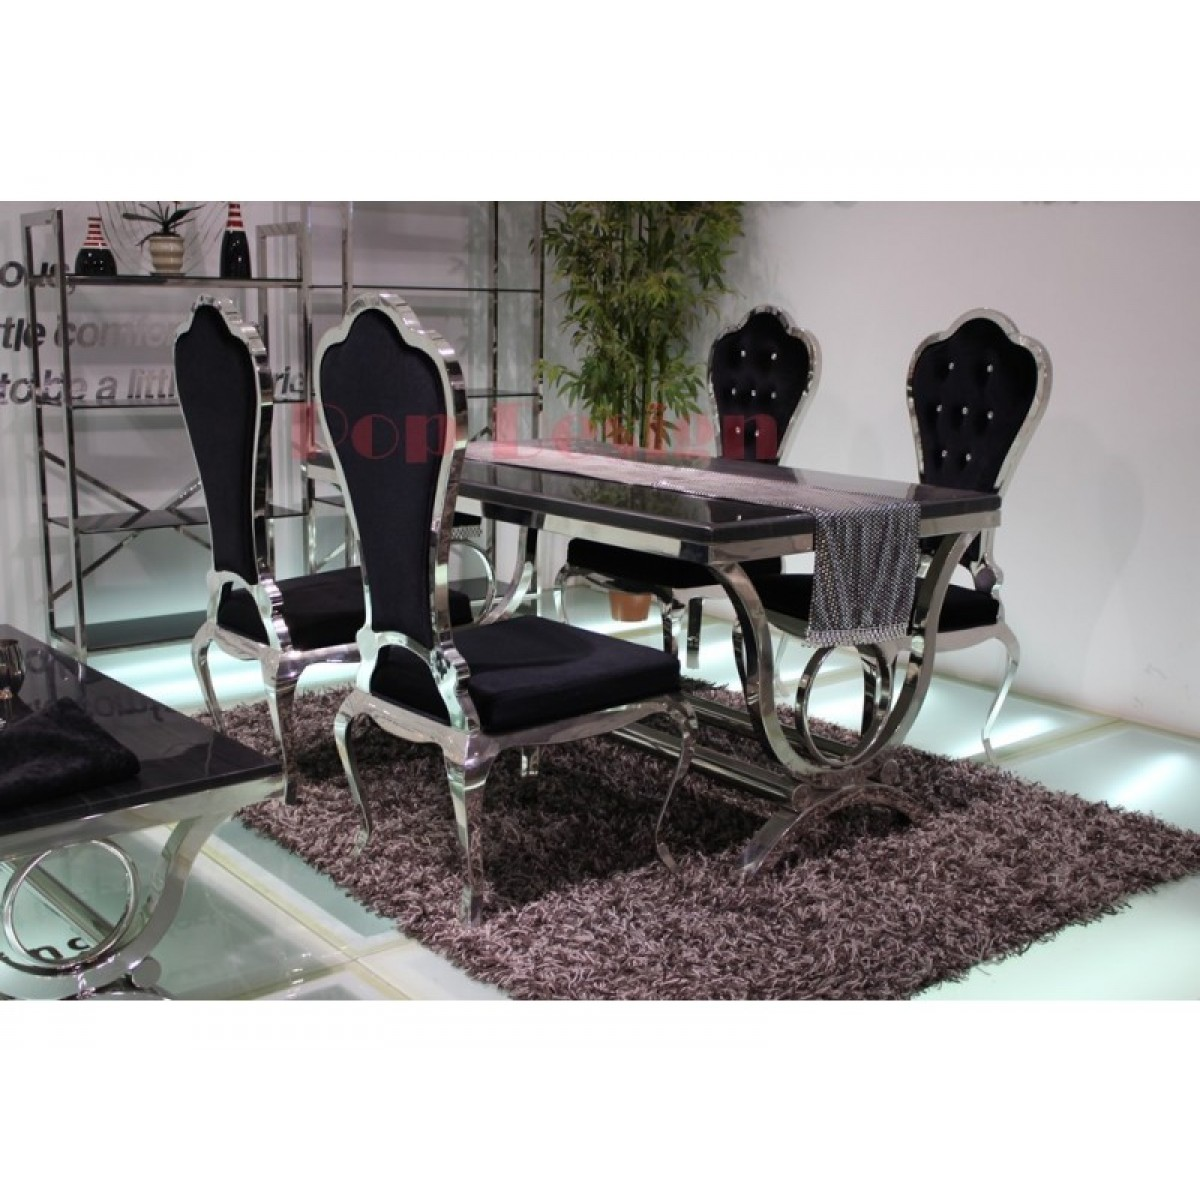 Chaise a salle a manger for Chaise plastique salle a manger